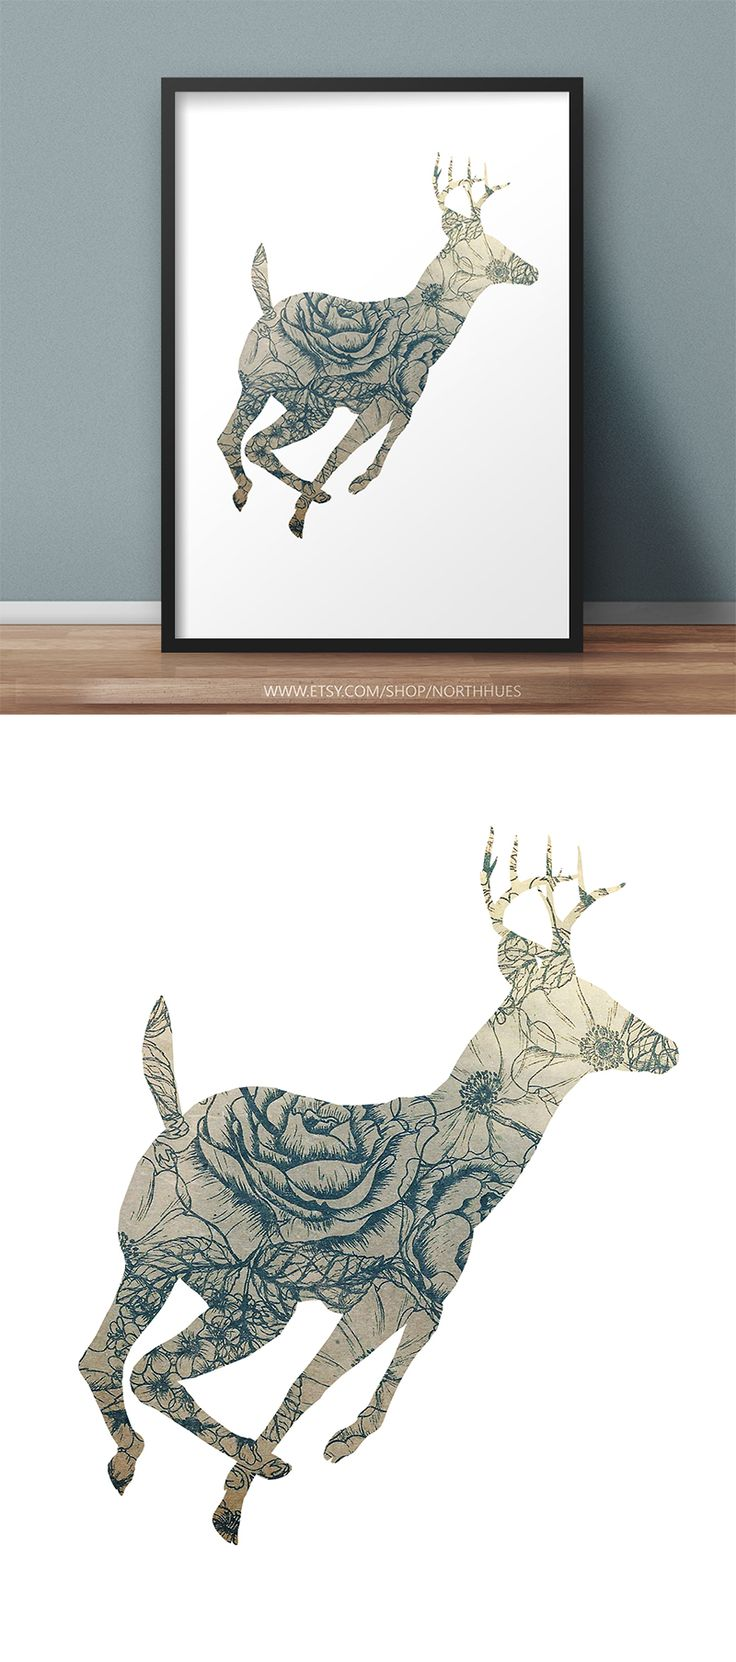 Deer Poster Design.  https://www.etsy.com/no-en/listing/536343373/vintage-look-floral-deer-poster-instant?ref=shop_home_active_1